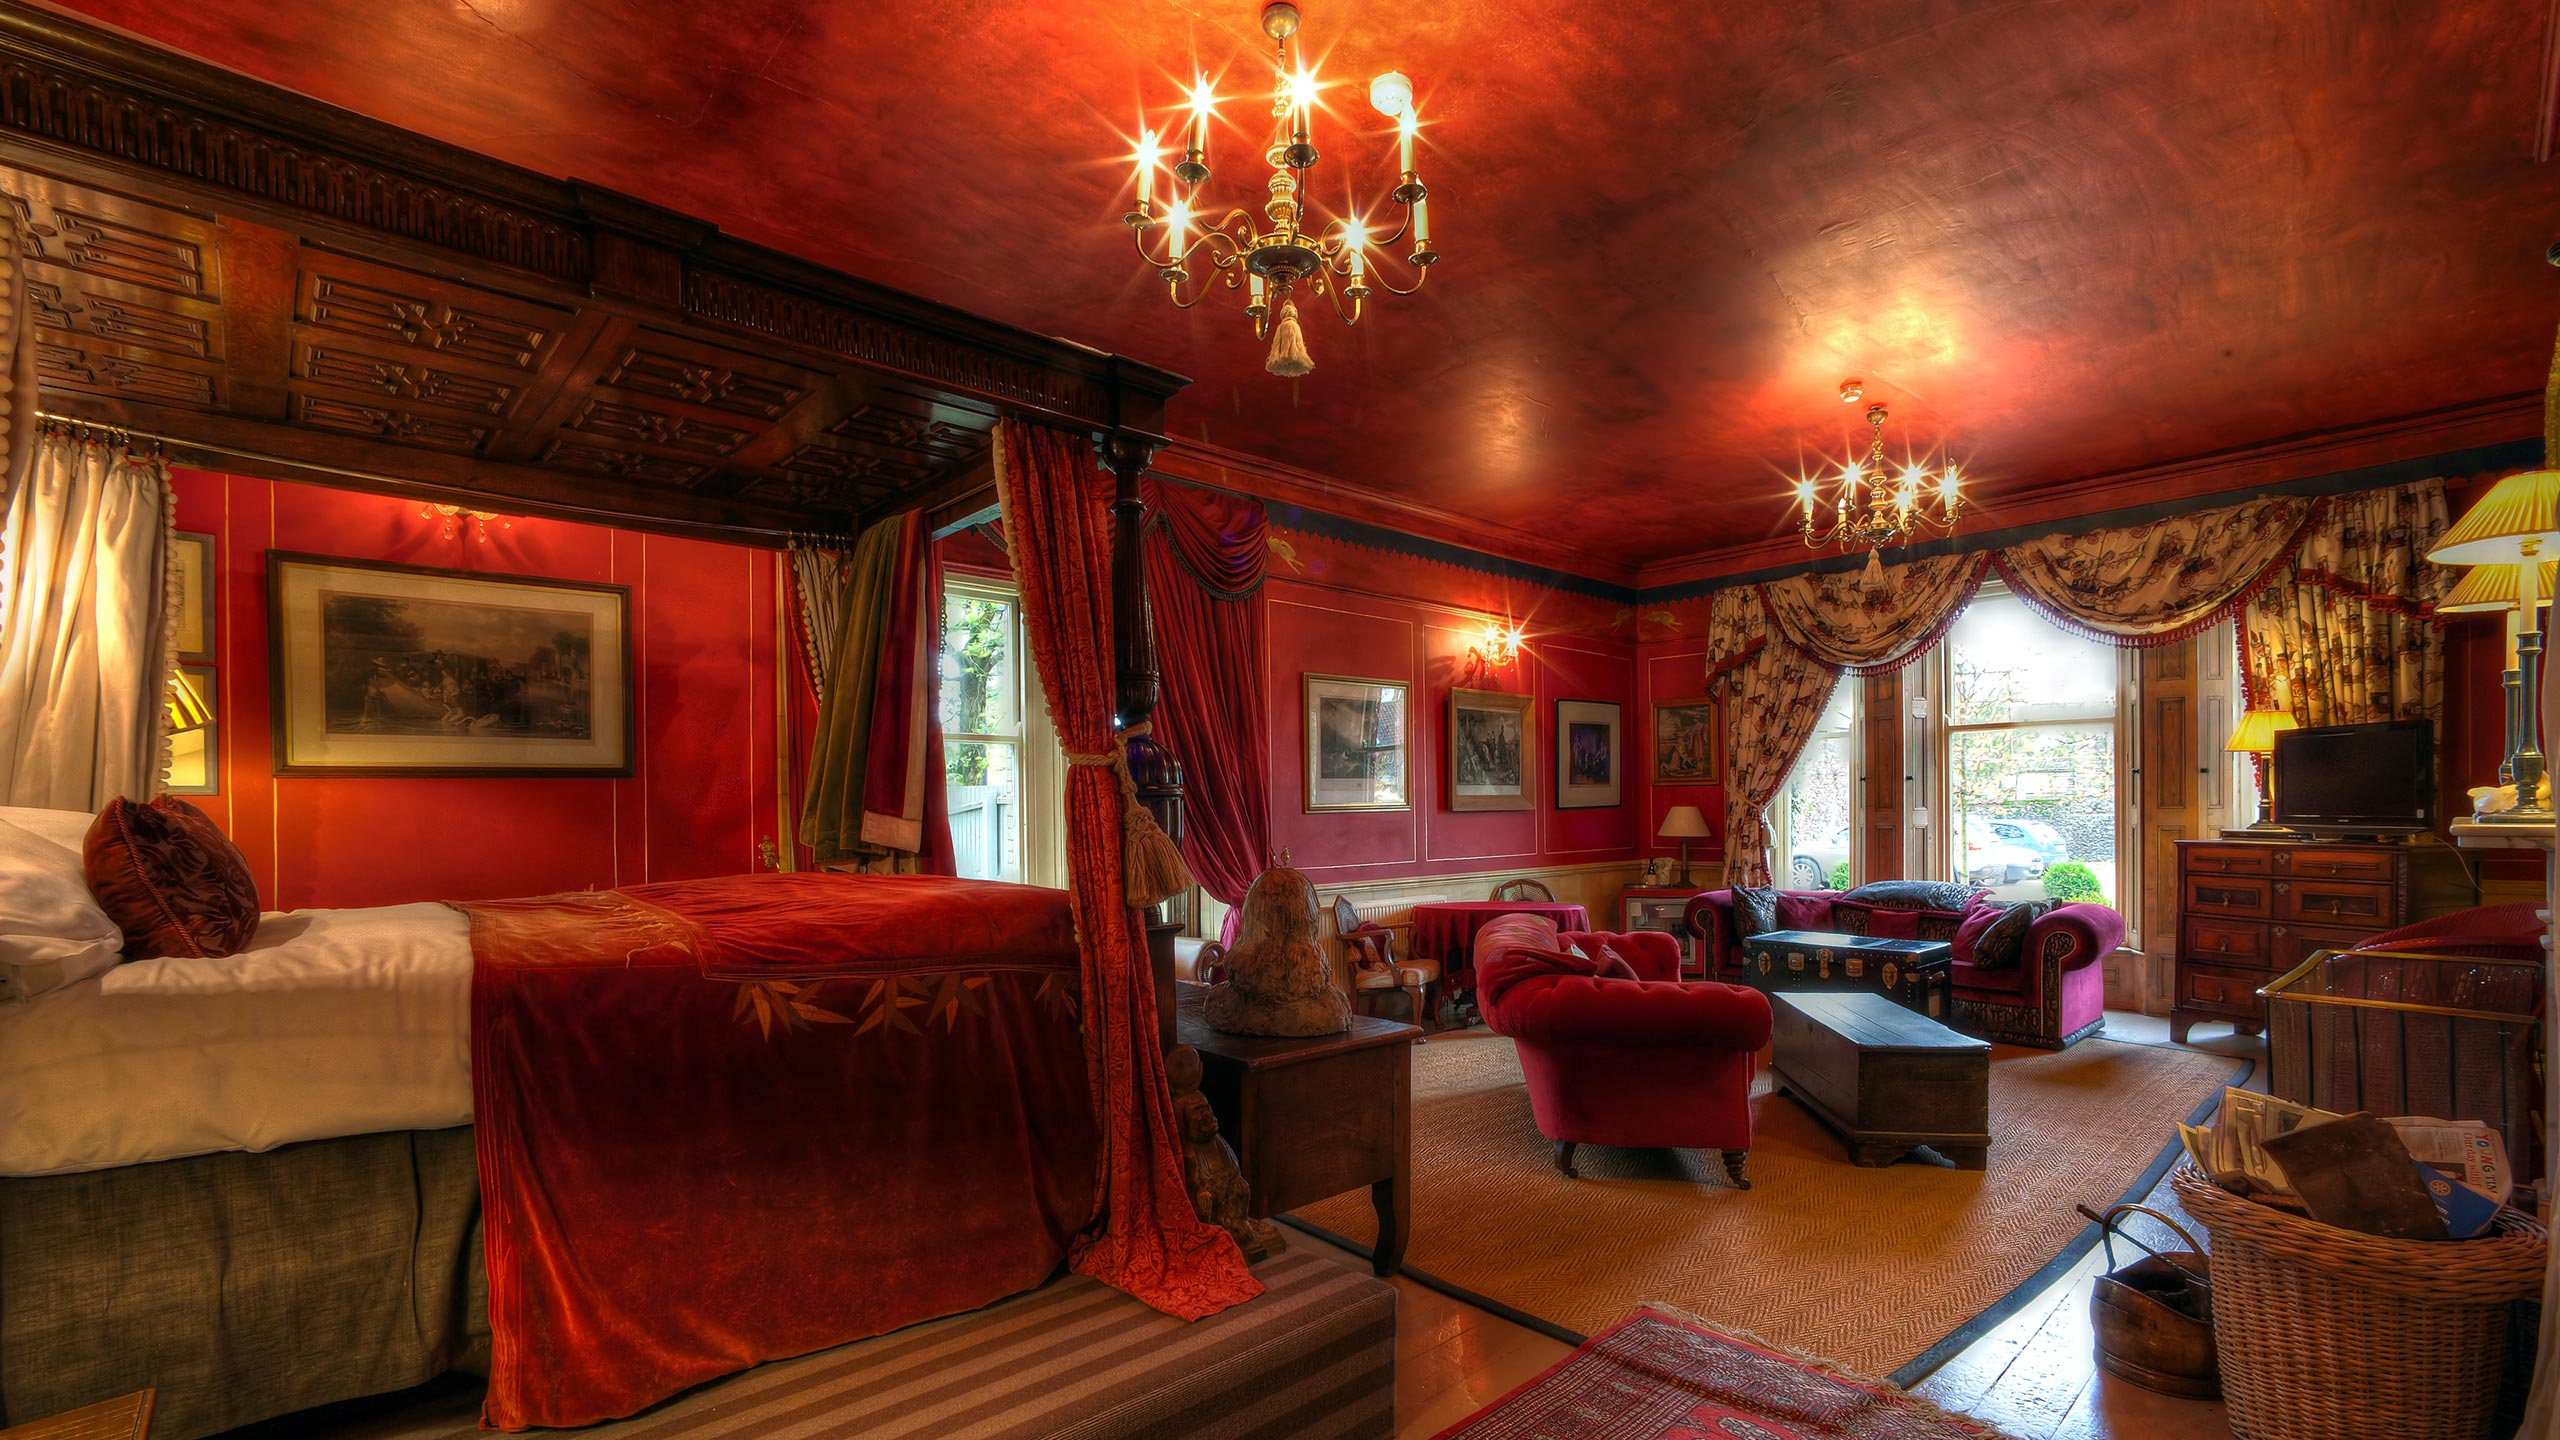 Strattons Hotel Luxury Boutique Accommodation, Swaffham, Norfolk